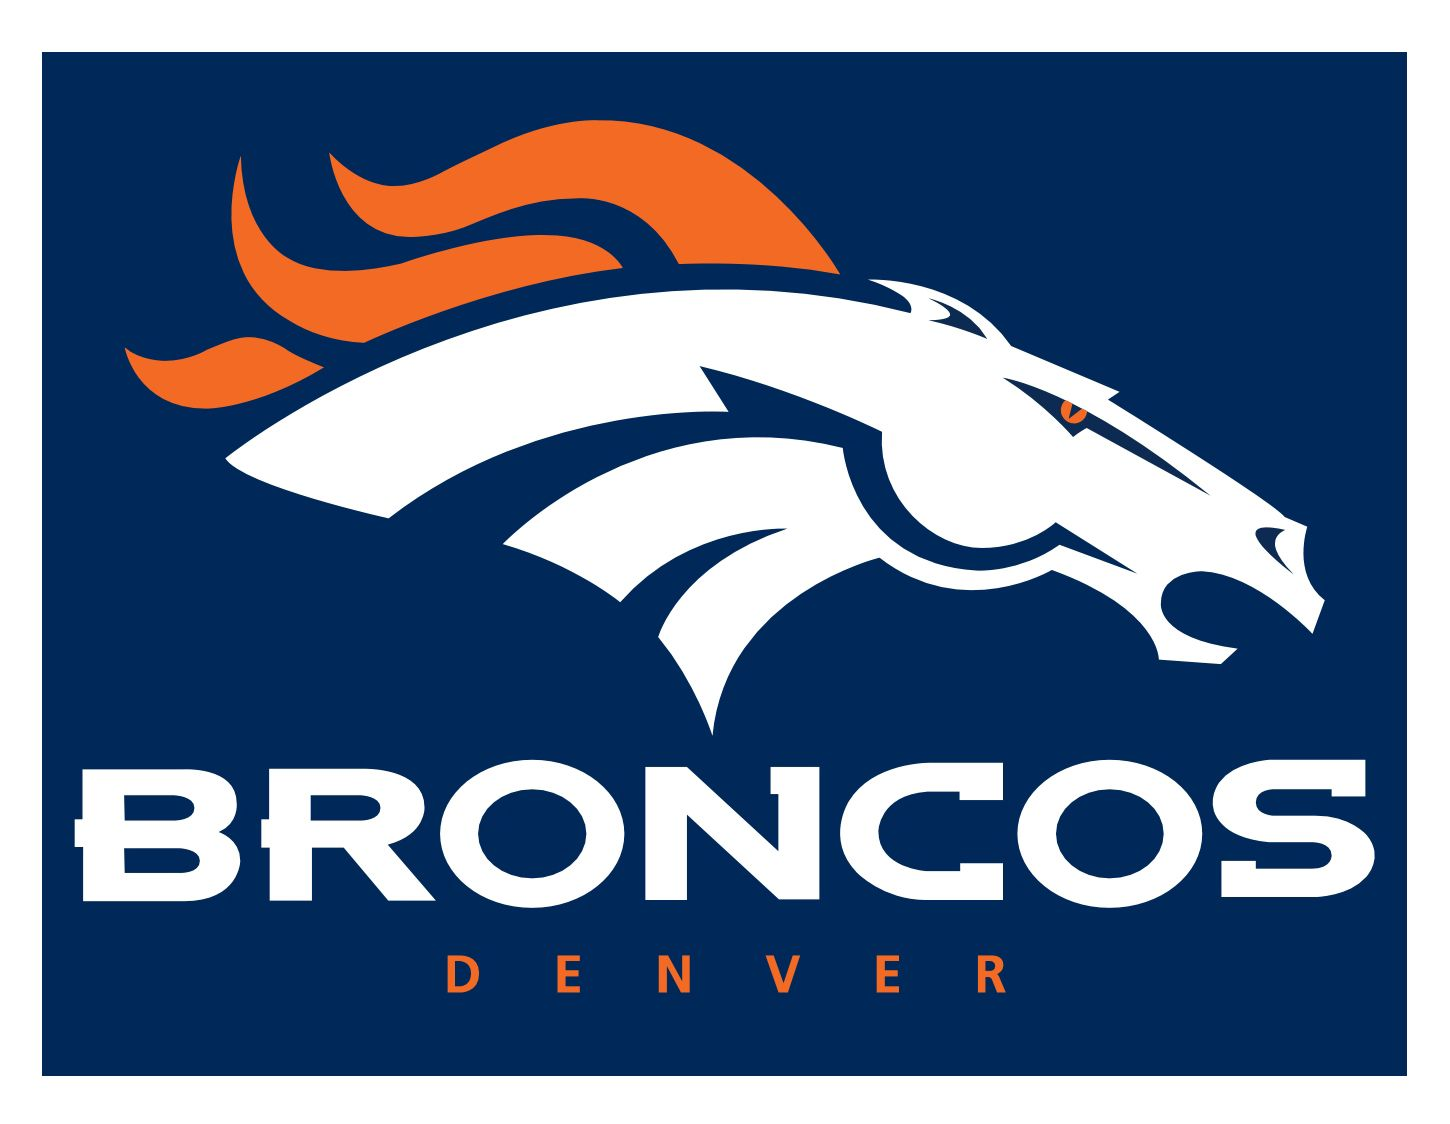 denver broncos logo all logos world pinterest rh pinterest dk western michigan broncos logo vector swift current broncos logo vector